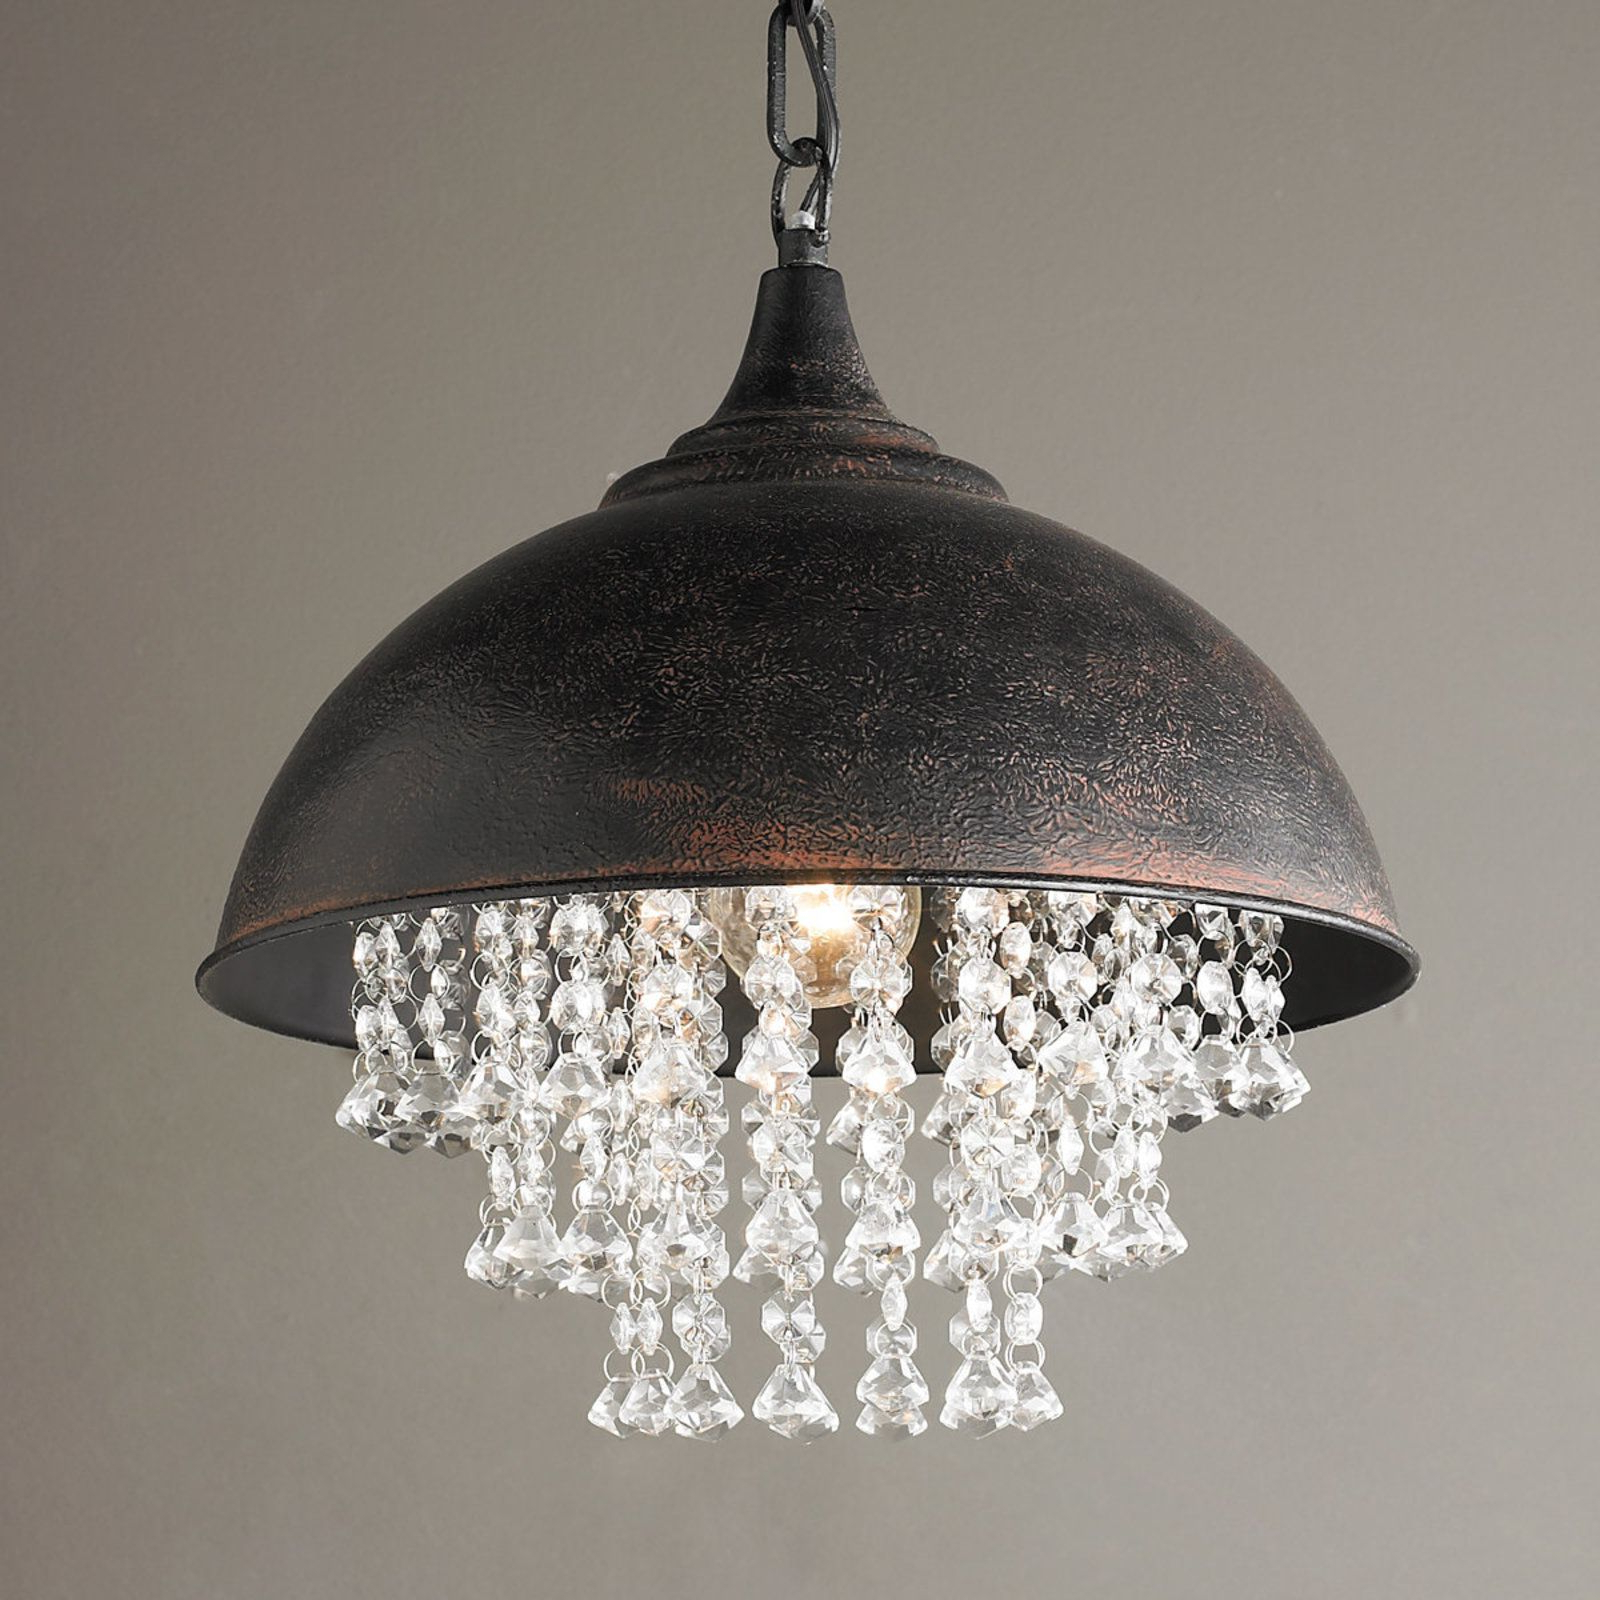 2020 Monadnock 1 Light Single Dome Pendants Throughout Metal Dome Pendant With Crystals (Gallery 20 of 20)